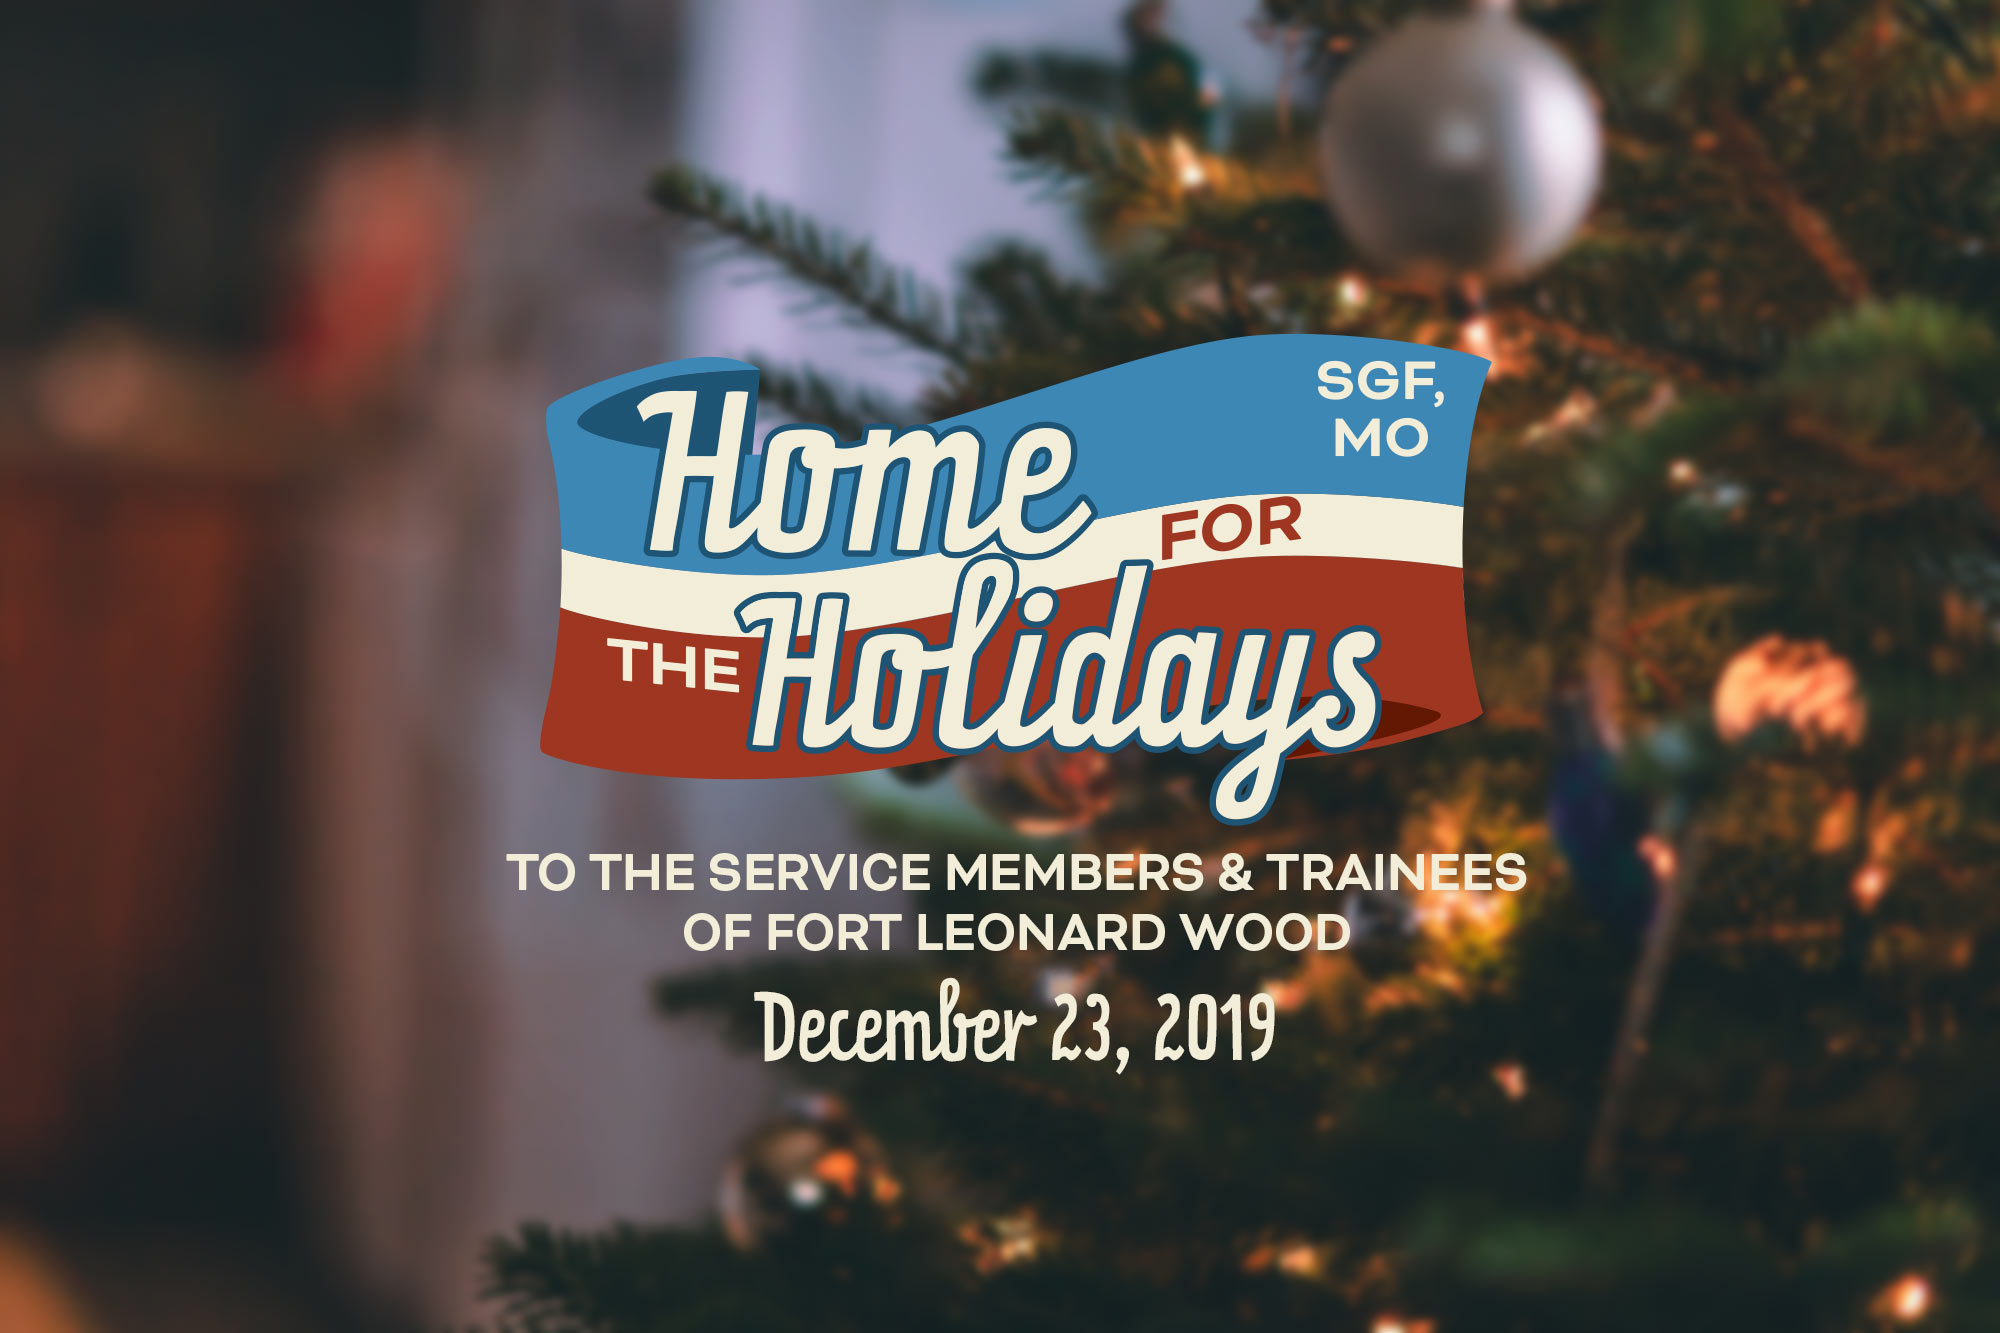 home for the holidays, to the service members and trainees of Fort Leonard Wood